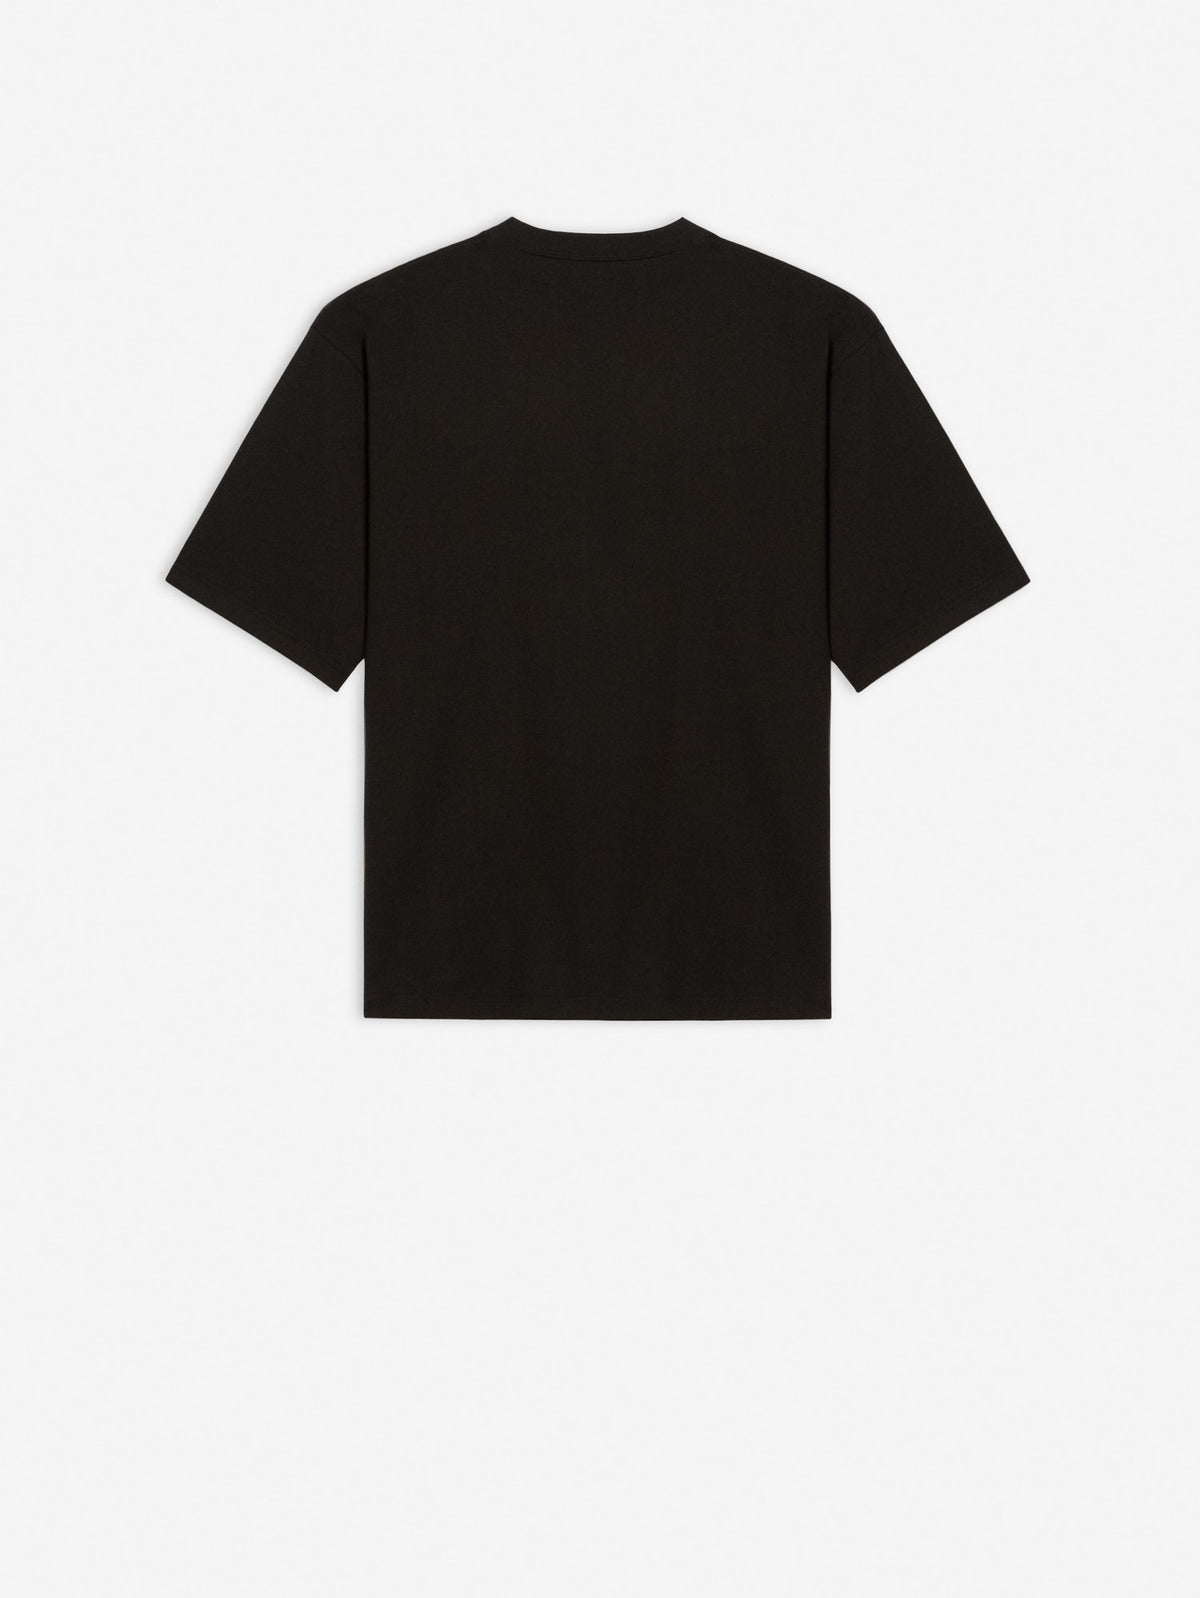 BALENCIAGA - X-Rated Large Fit T-Shirt - Black/Red